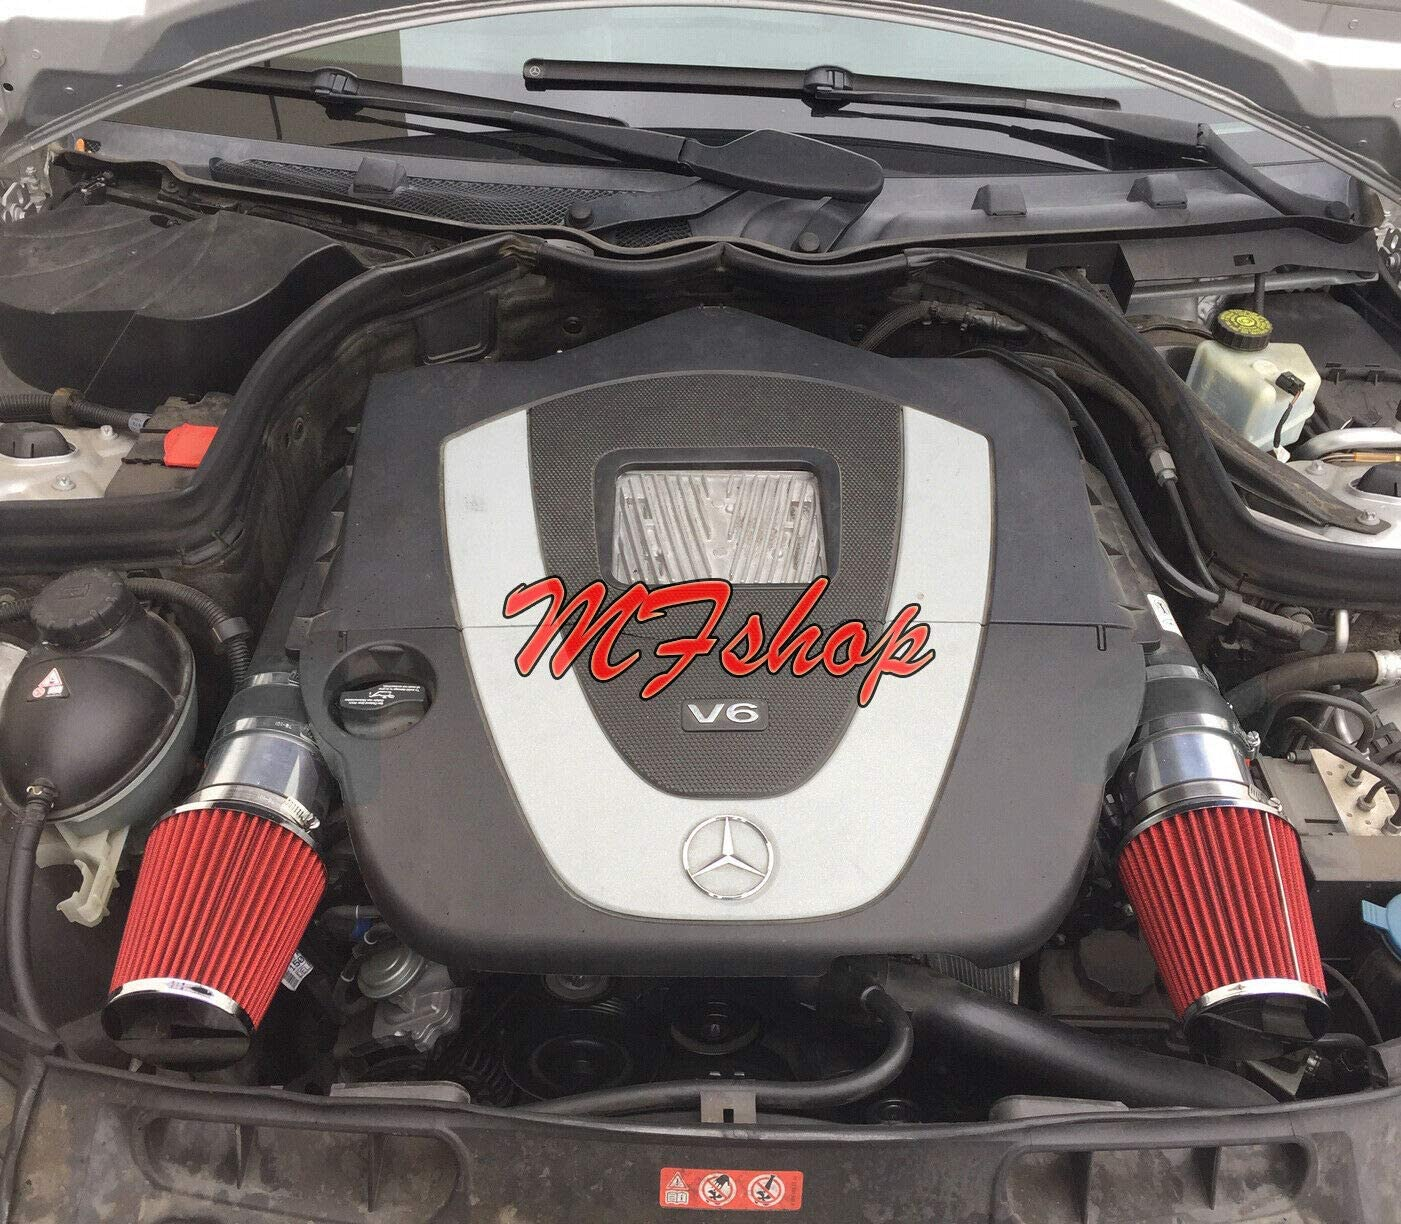 Amazon Com Air Intake Filter Kit System For 2008 2009 2010 2011 2012 Mercedes Benz C300 C350 With 3 0l 3 5l V6 Engine Black Accessories With Red Filter Automotive